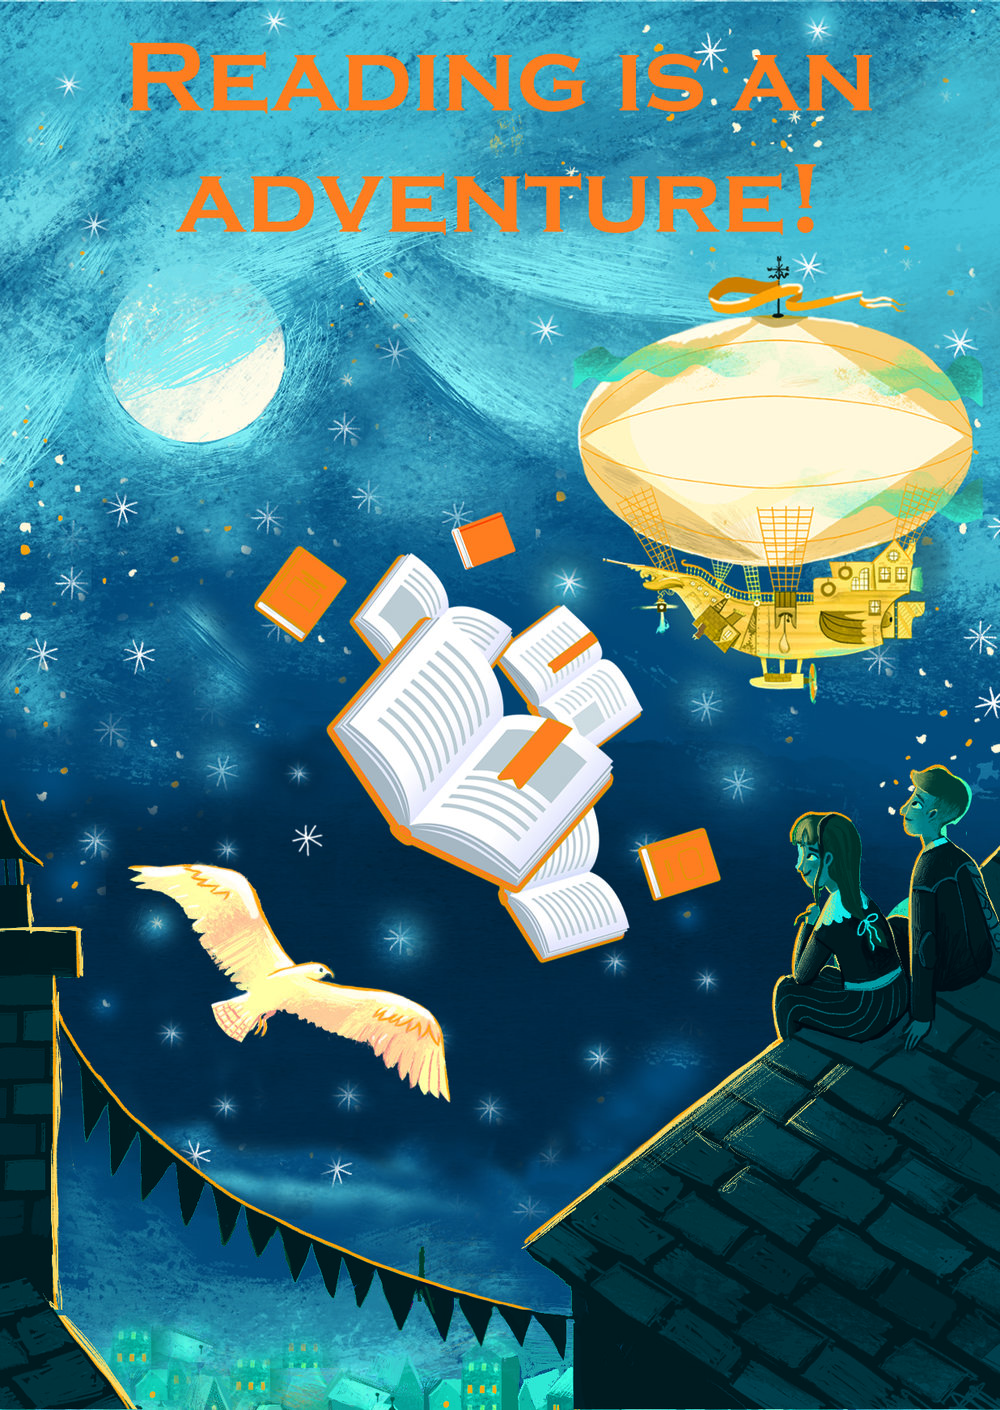 Copy of Reading is an Adventure poster 2